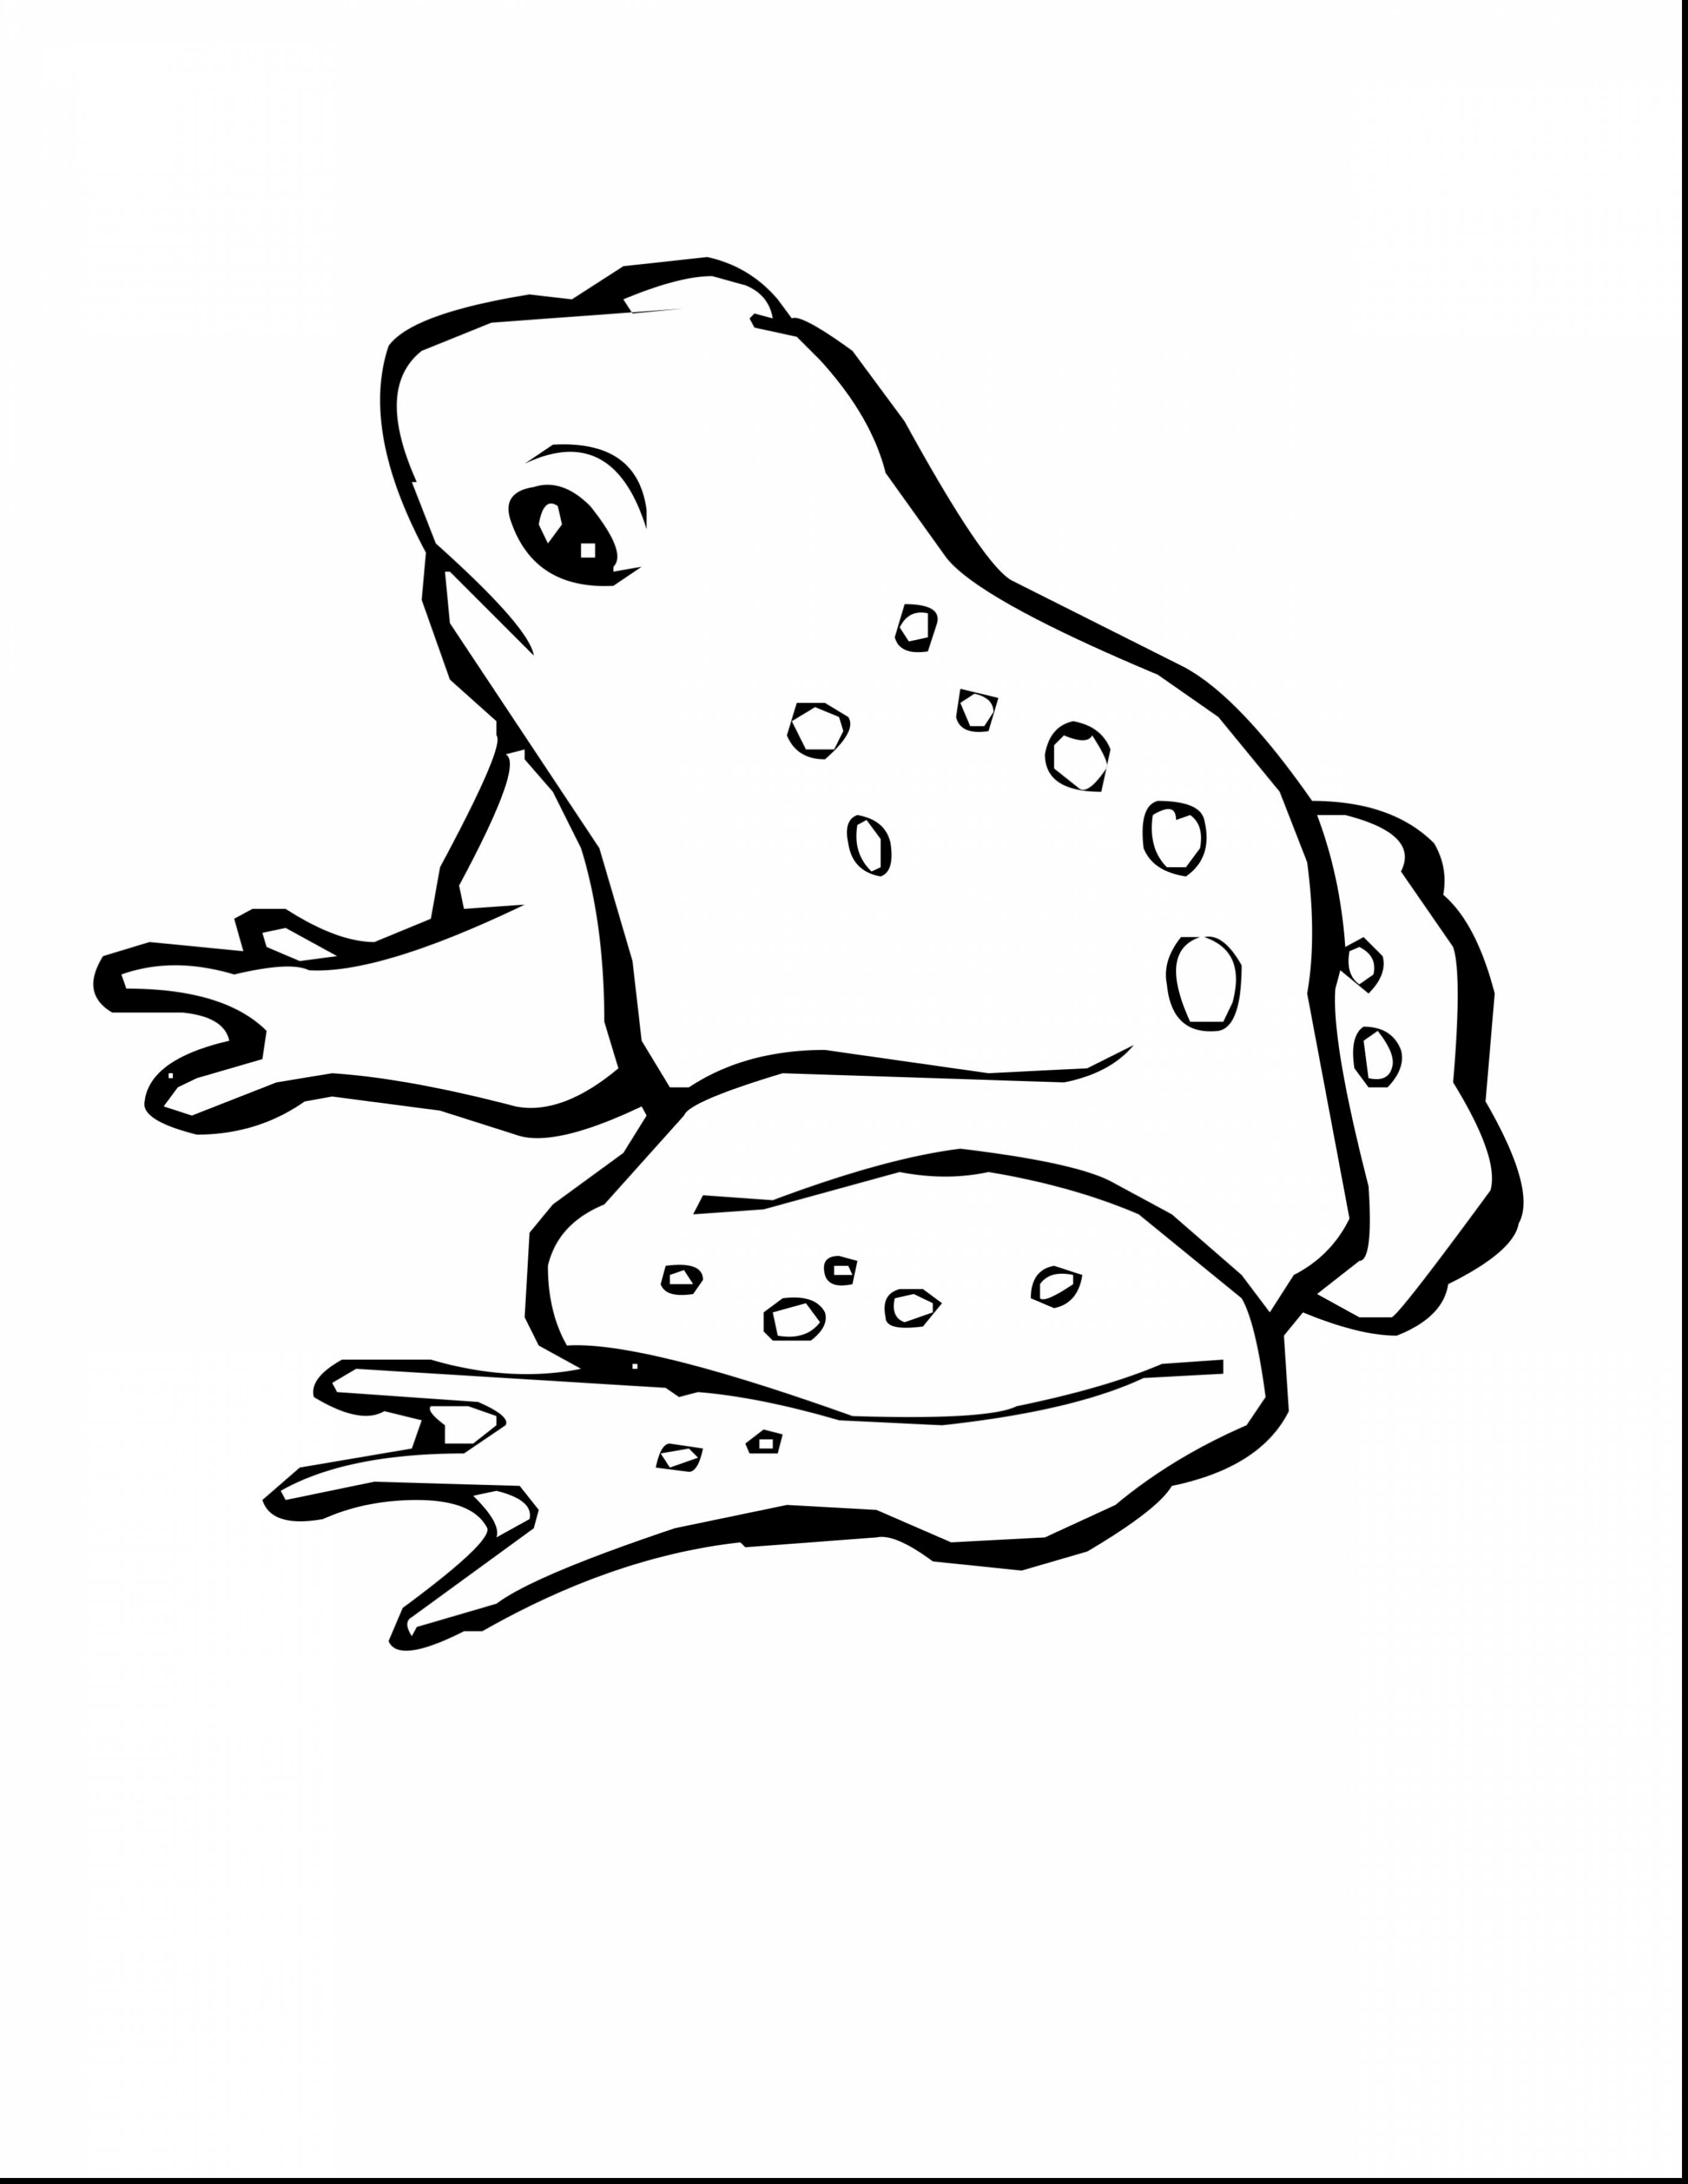 green tree frog coloring page green tree frog drawing at getdrawings free download green tree coloring frog page